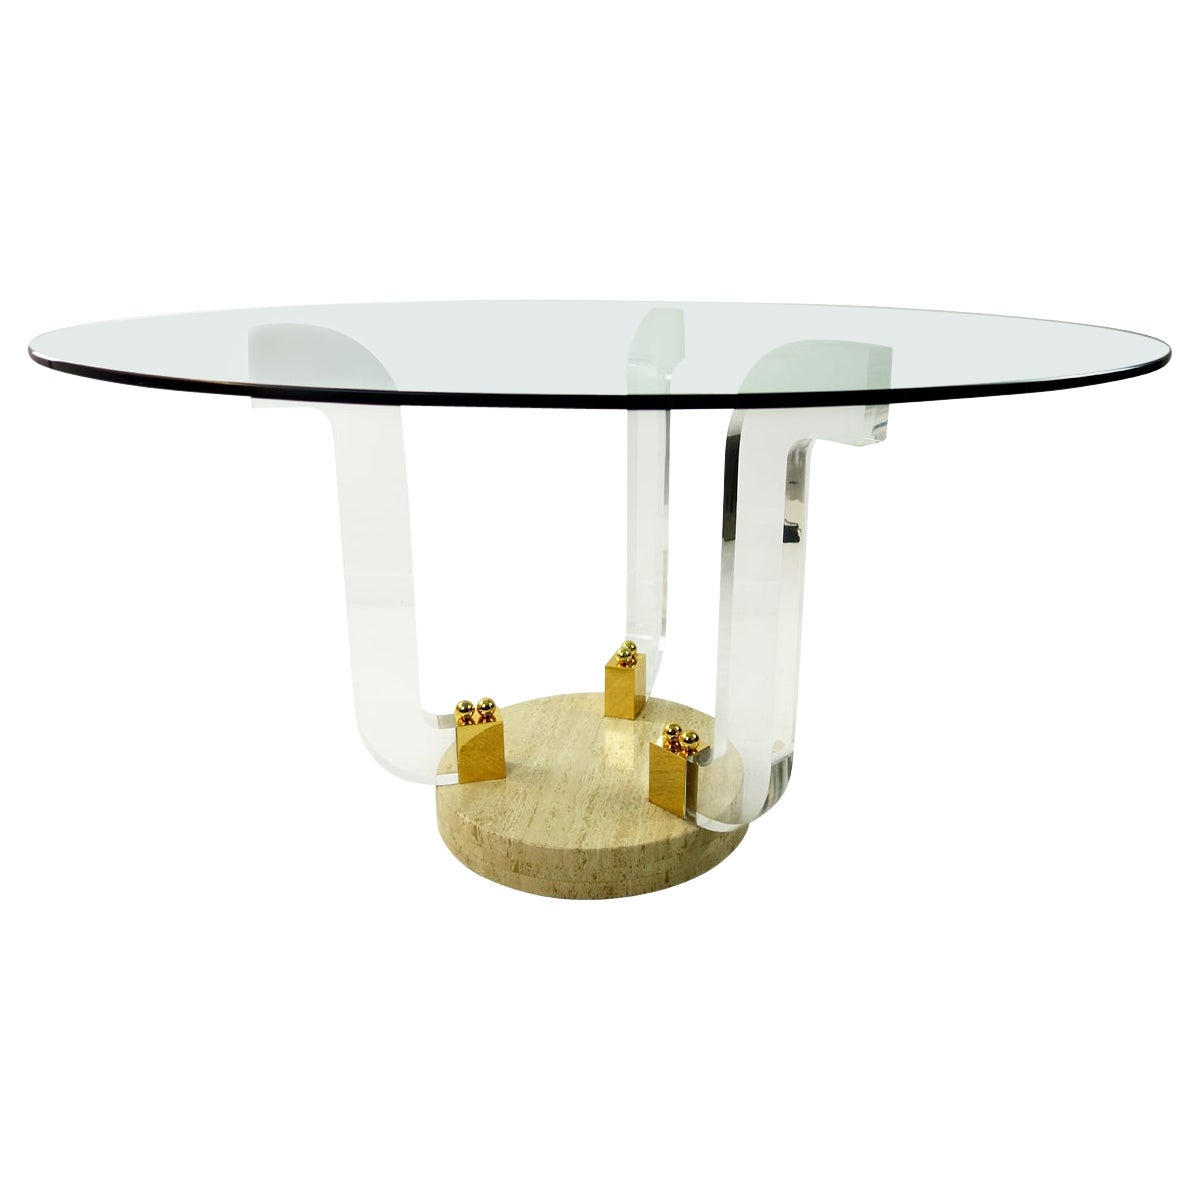 Hollywood Regency Round Dining Table Marble Foot, Plexiglass and Brass Details